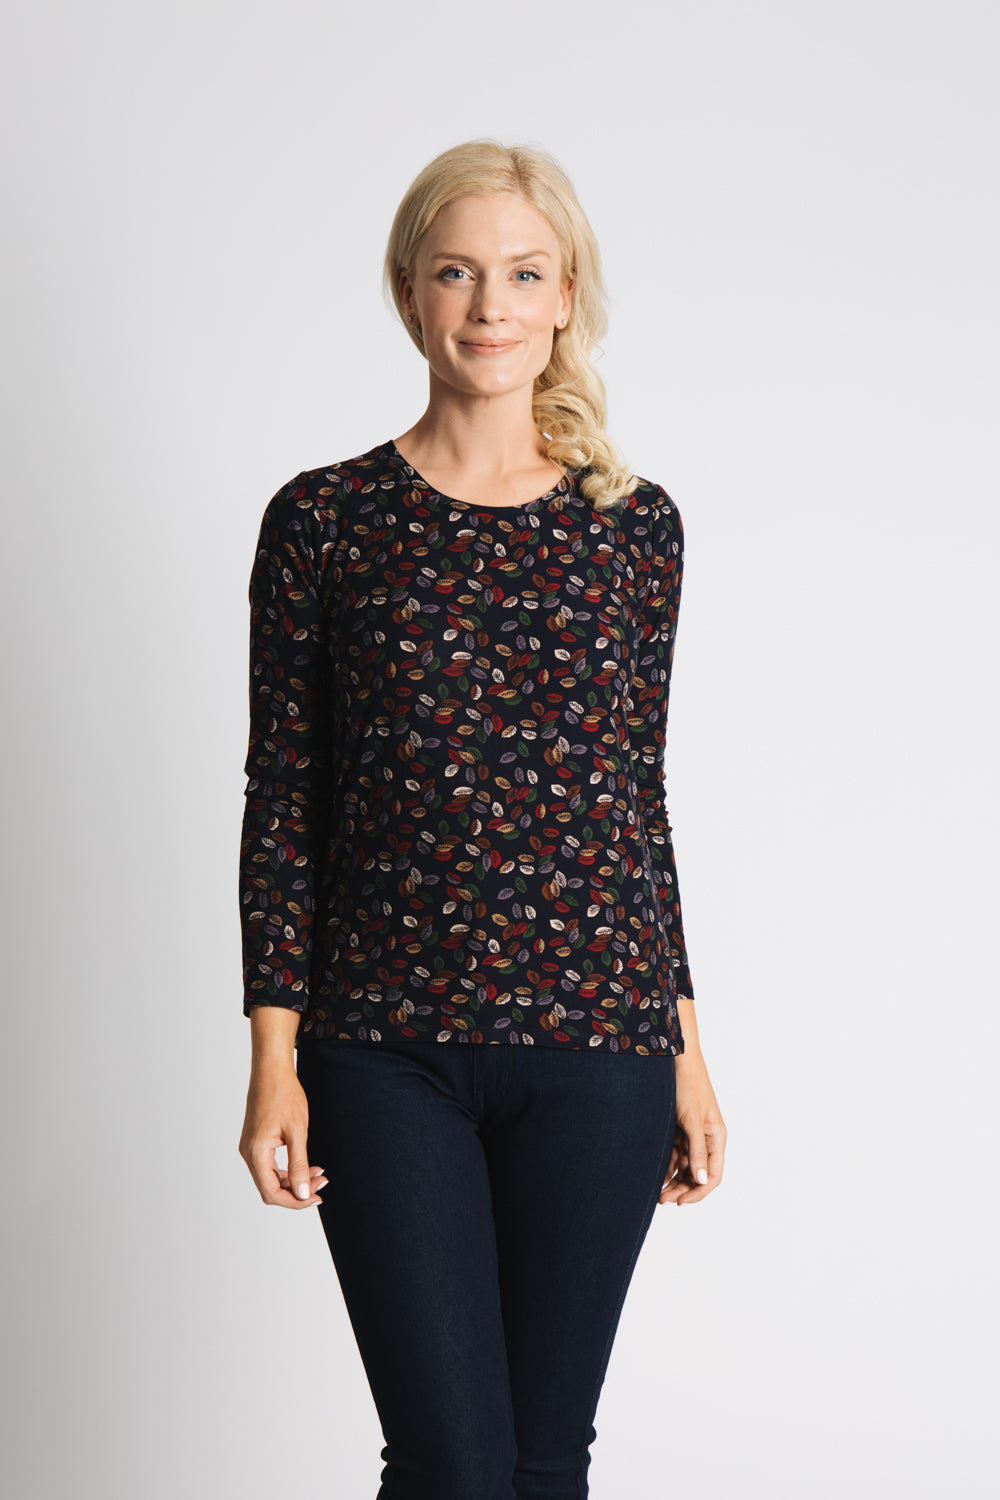 ROUND NECK LONG SLEEVE TOP IN SUPER SOFT JERSEY WITH LEAF PRINT